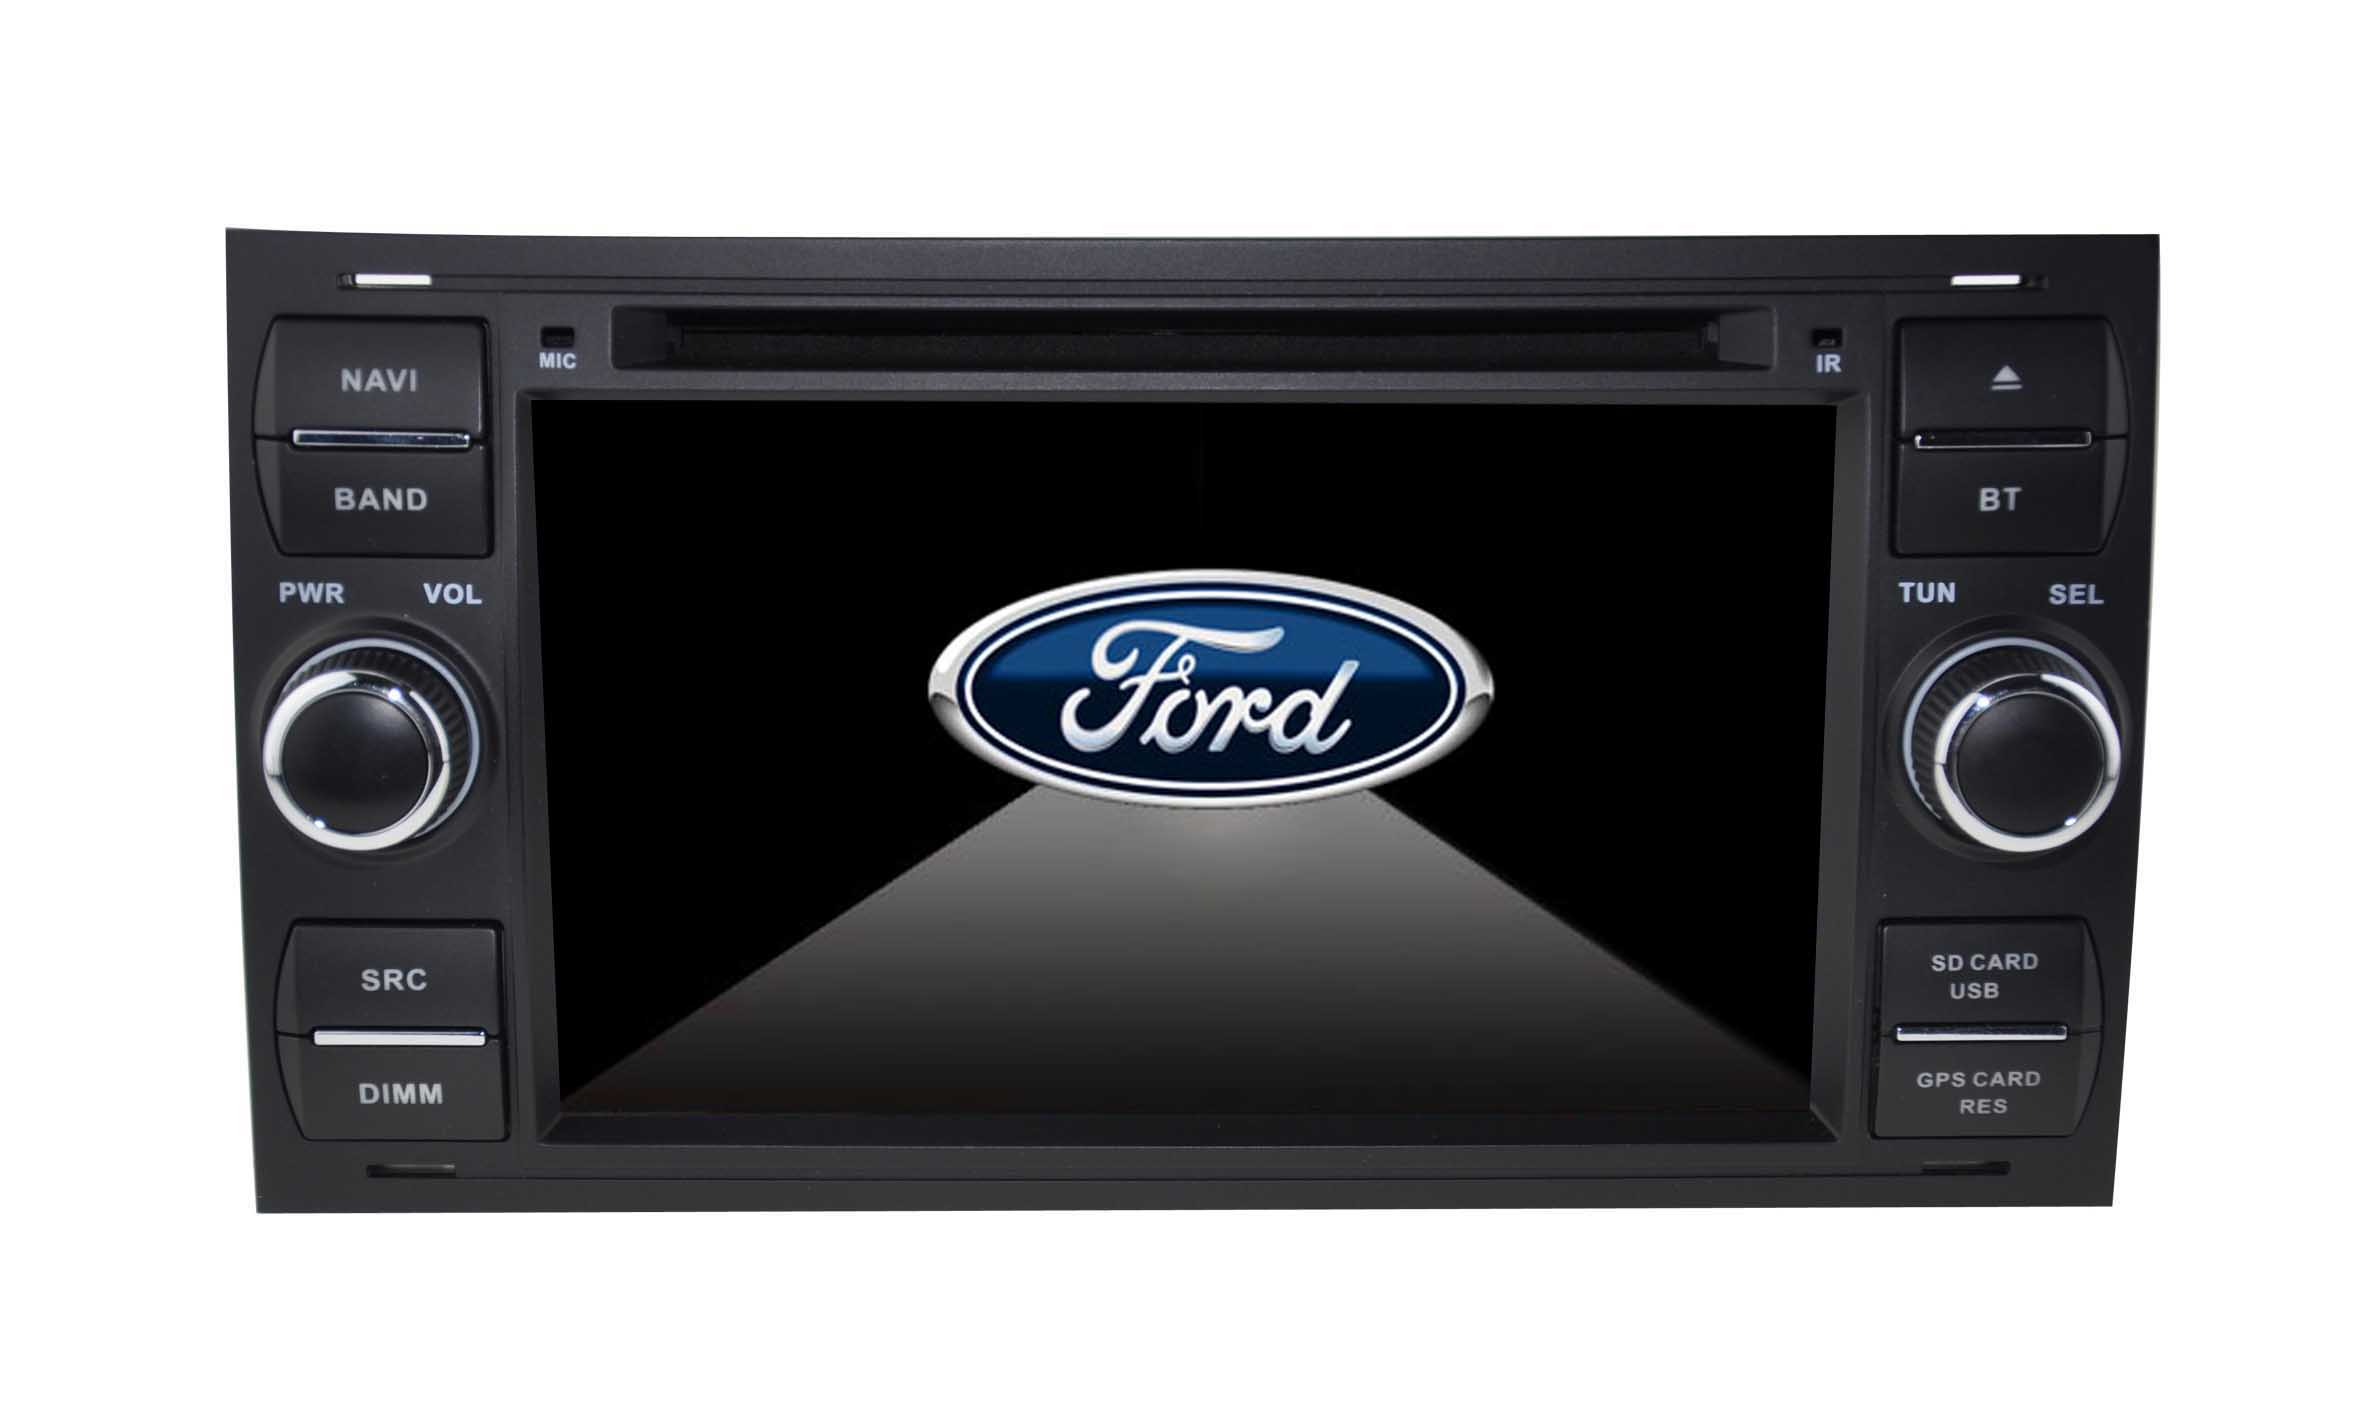 Station Multimédia Mobile Autoradio HD GPS DIVX DVD 3G MP3 USB SD RDS Bluetooth IPOD disque dur 2 Go avec CAN BUS pour Ford Focus C-Max Fiesta Fusion Galaxy Transit Kuga 800MHZ